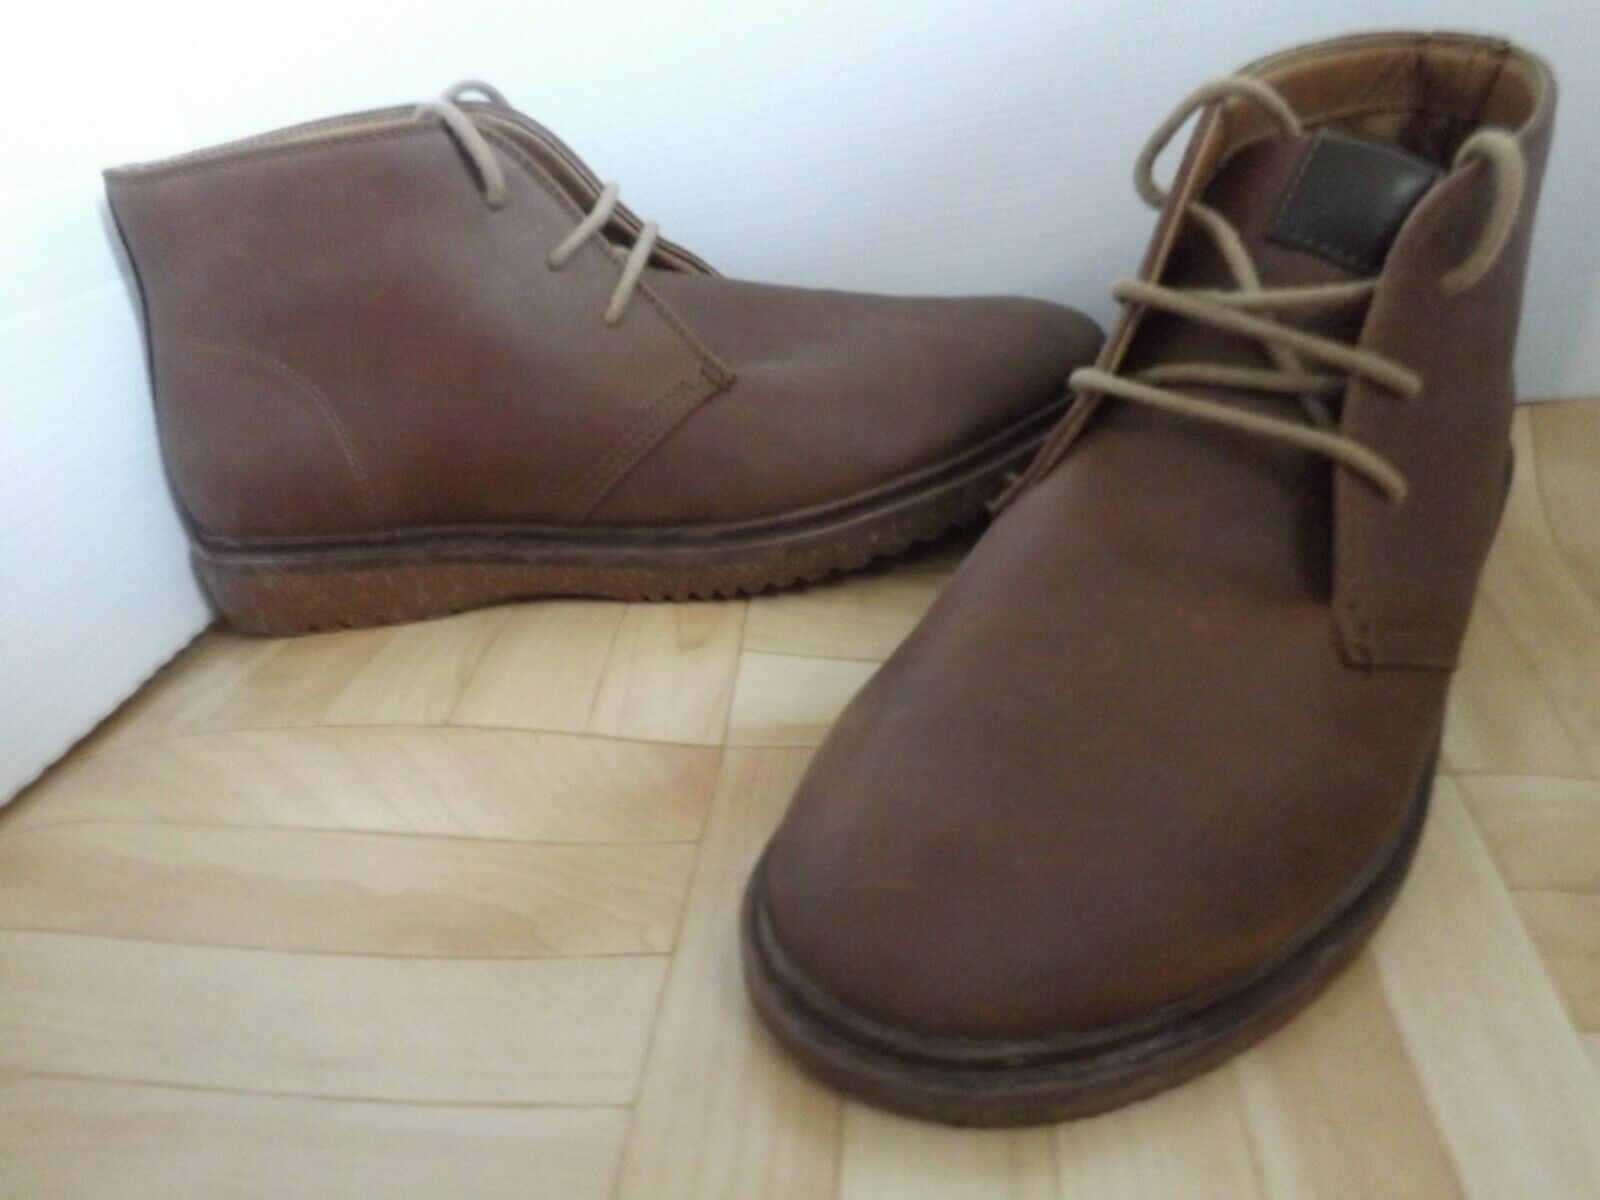 F&F Bot Sporty Brow Brown Faux Nubuck Lace Up Chukka Ankle Boots 6.5 UK 40 EU